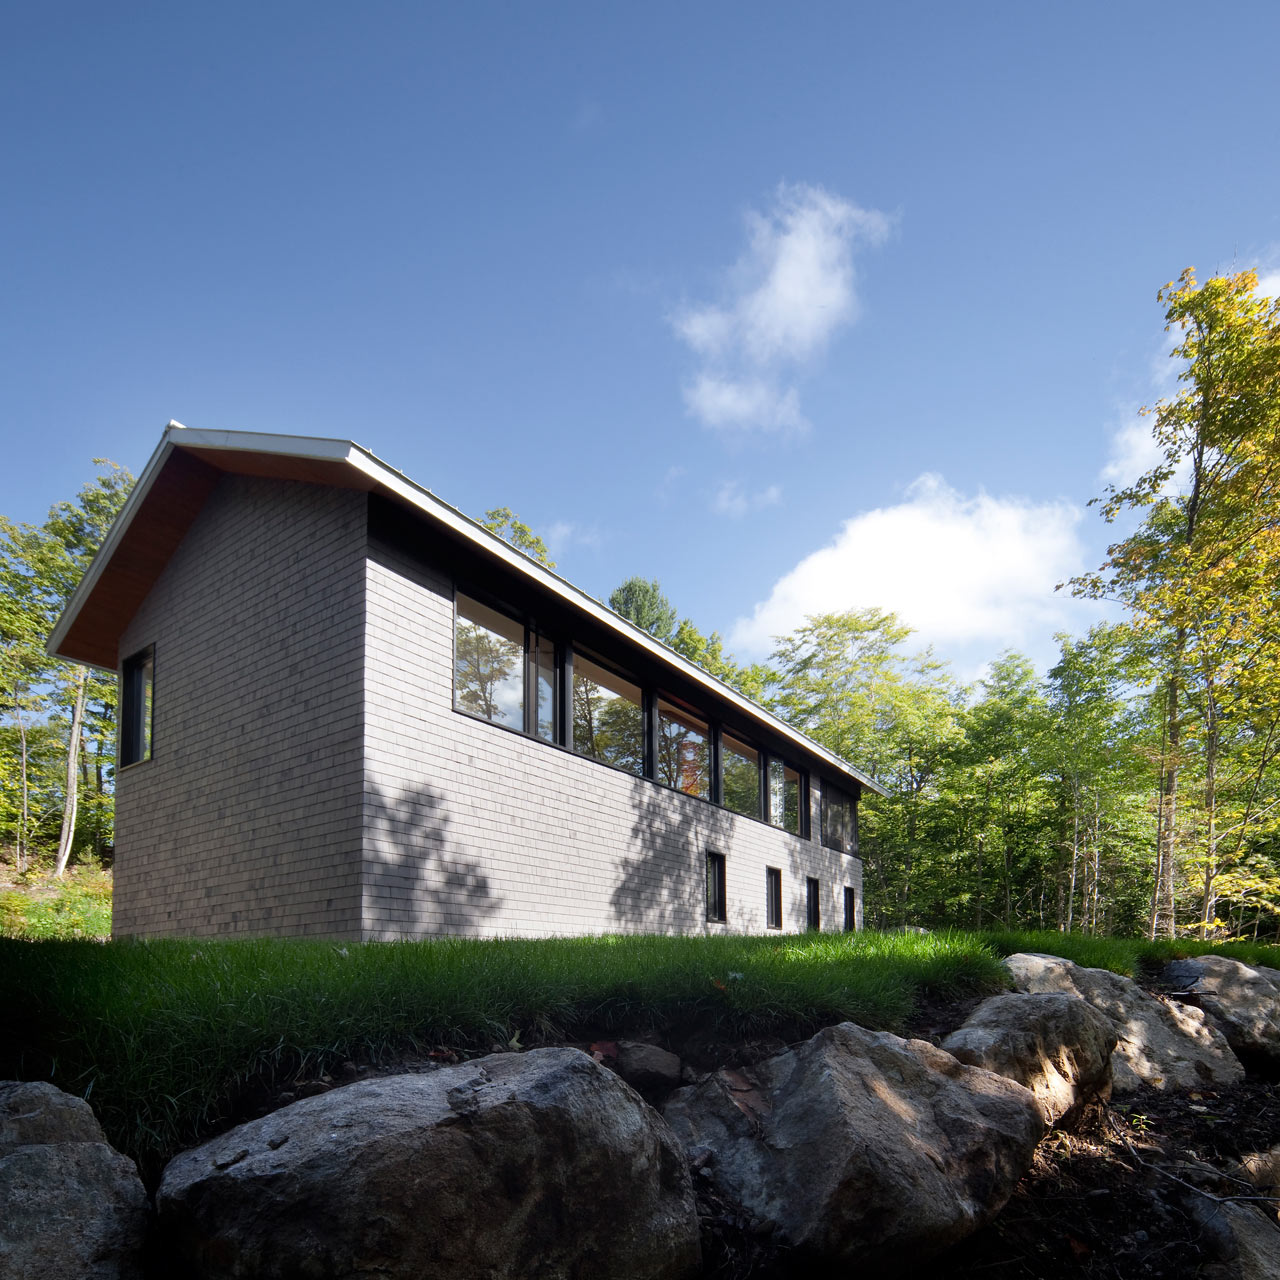 A Modern Cottage on the Edge of the Forest